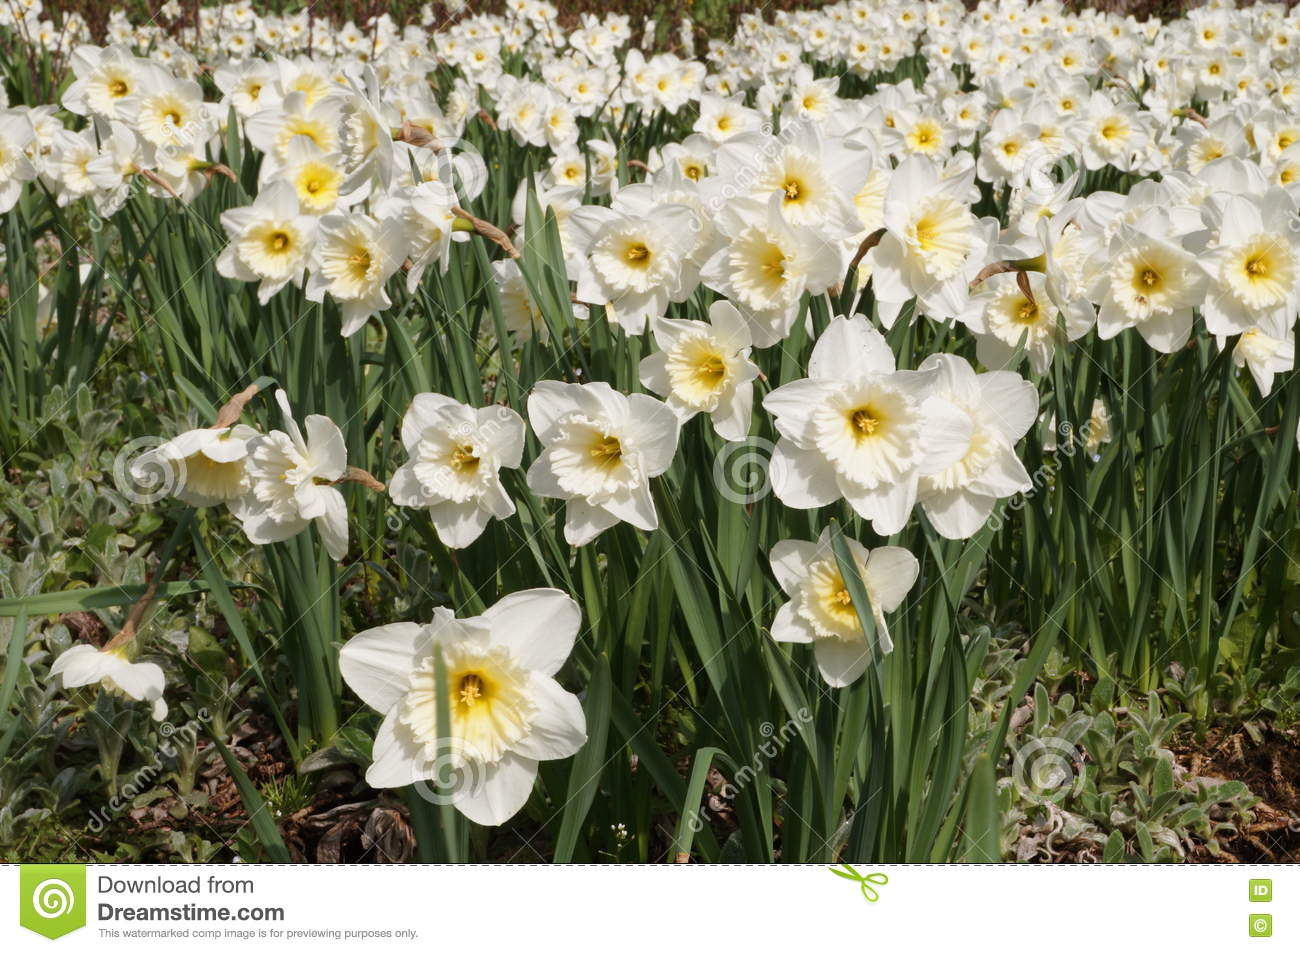 Flower bed of daffodils with large white flowers stock image image download flower bed of daffodils with large white flowers stock image image of large mightylinksfo